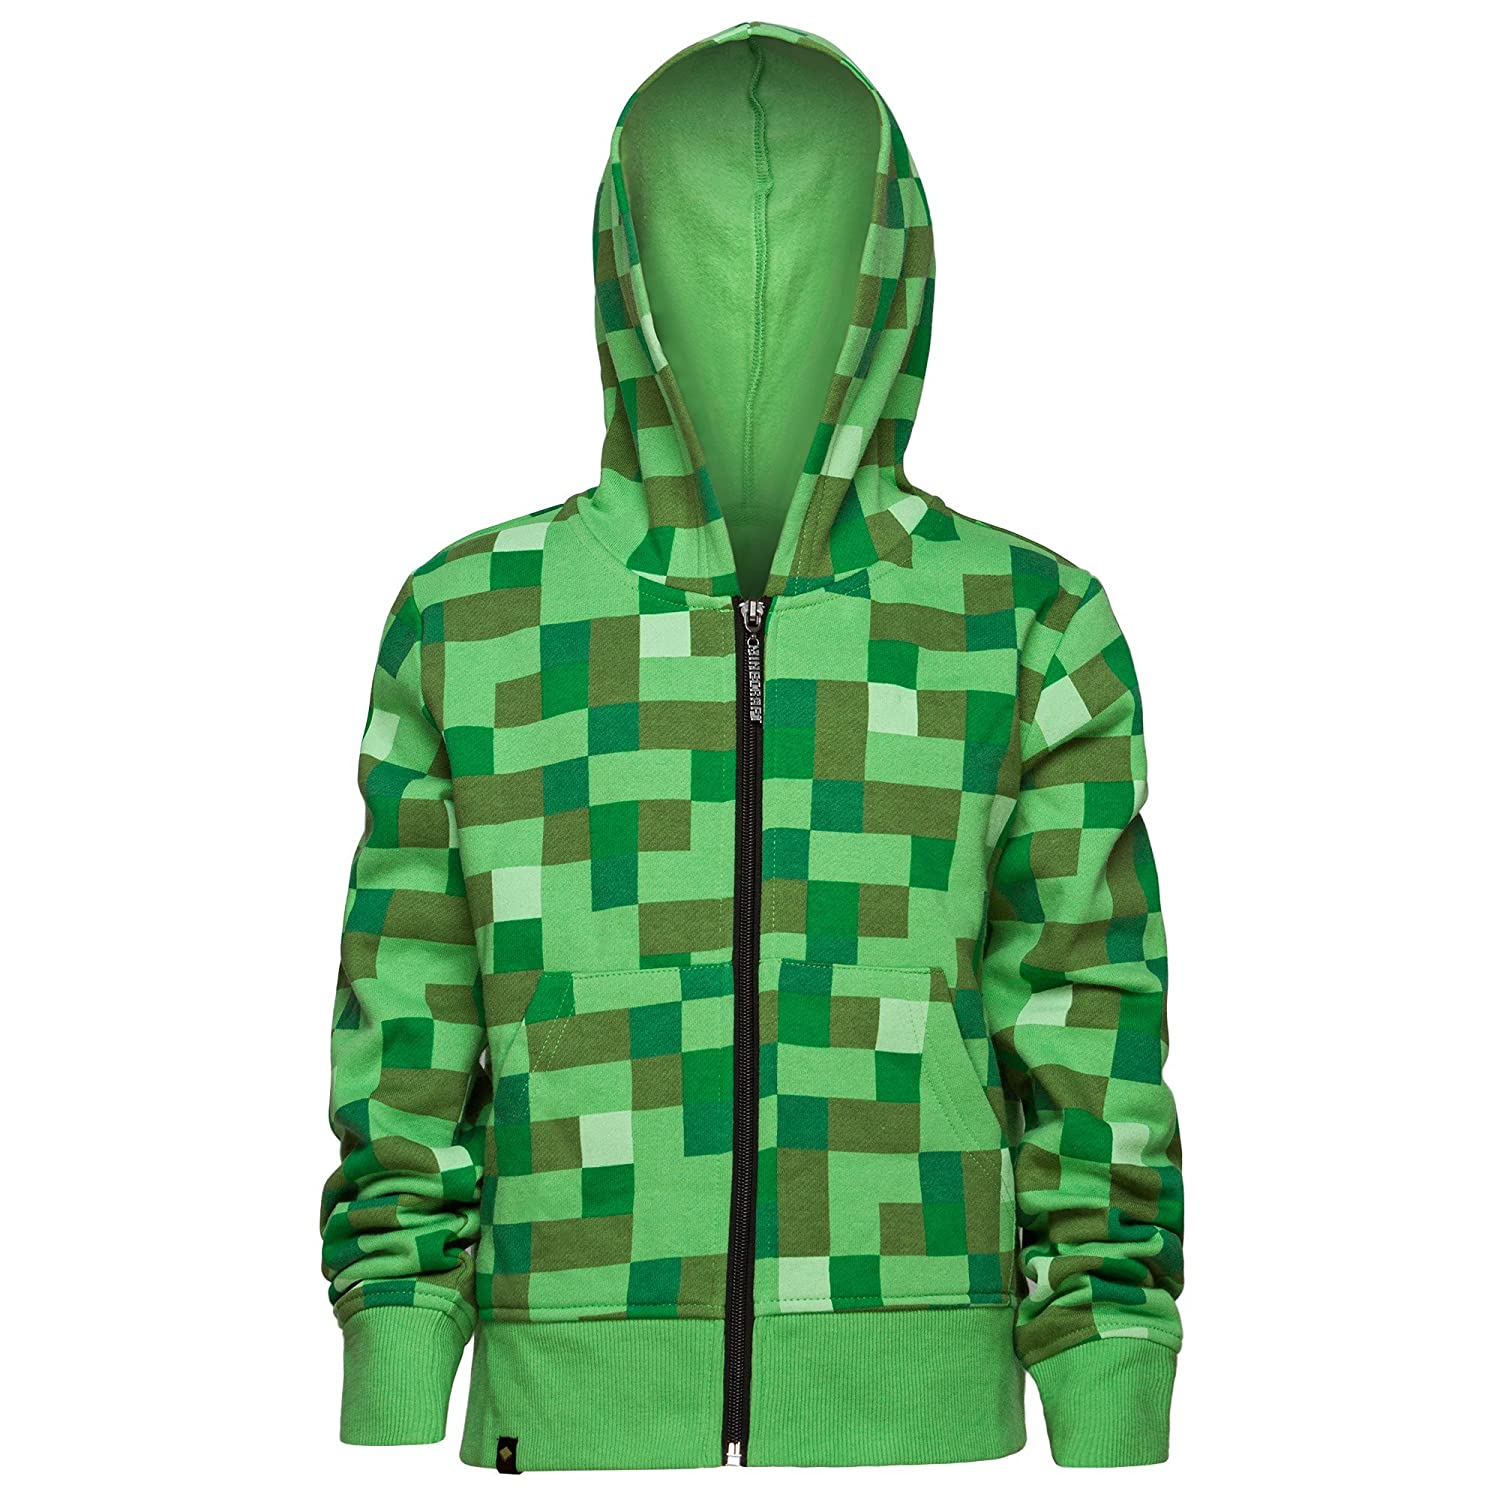 Minecraft Creeper No Face Premium Zip-Up Youth Hoodie (Youth Small, Green) MJMC-04074Y-YS